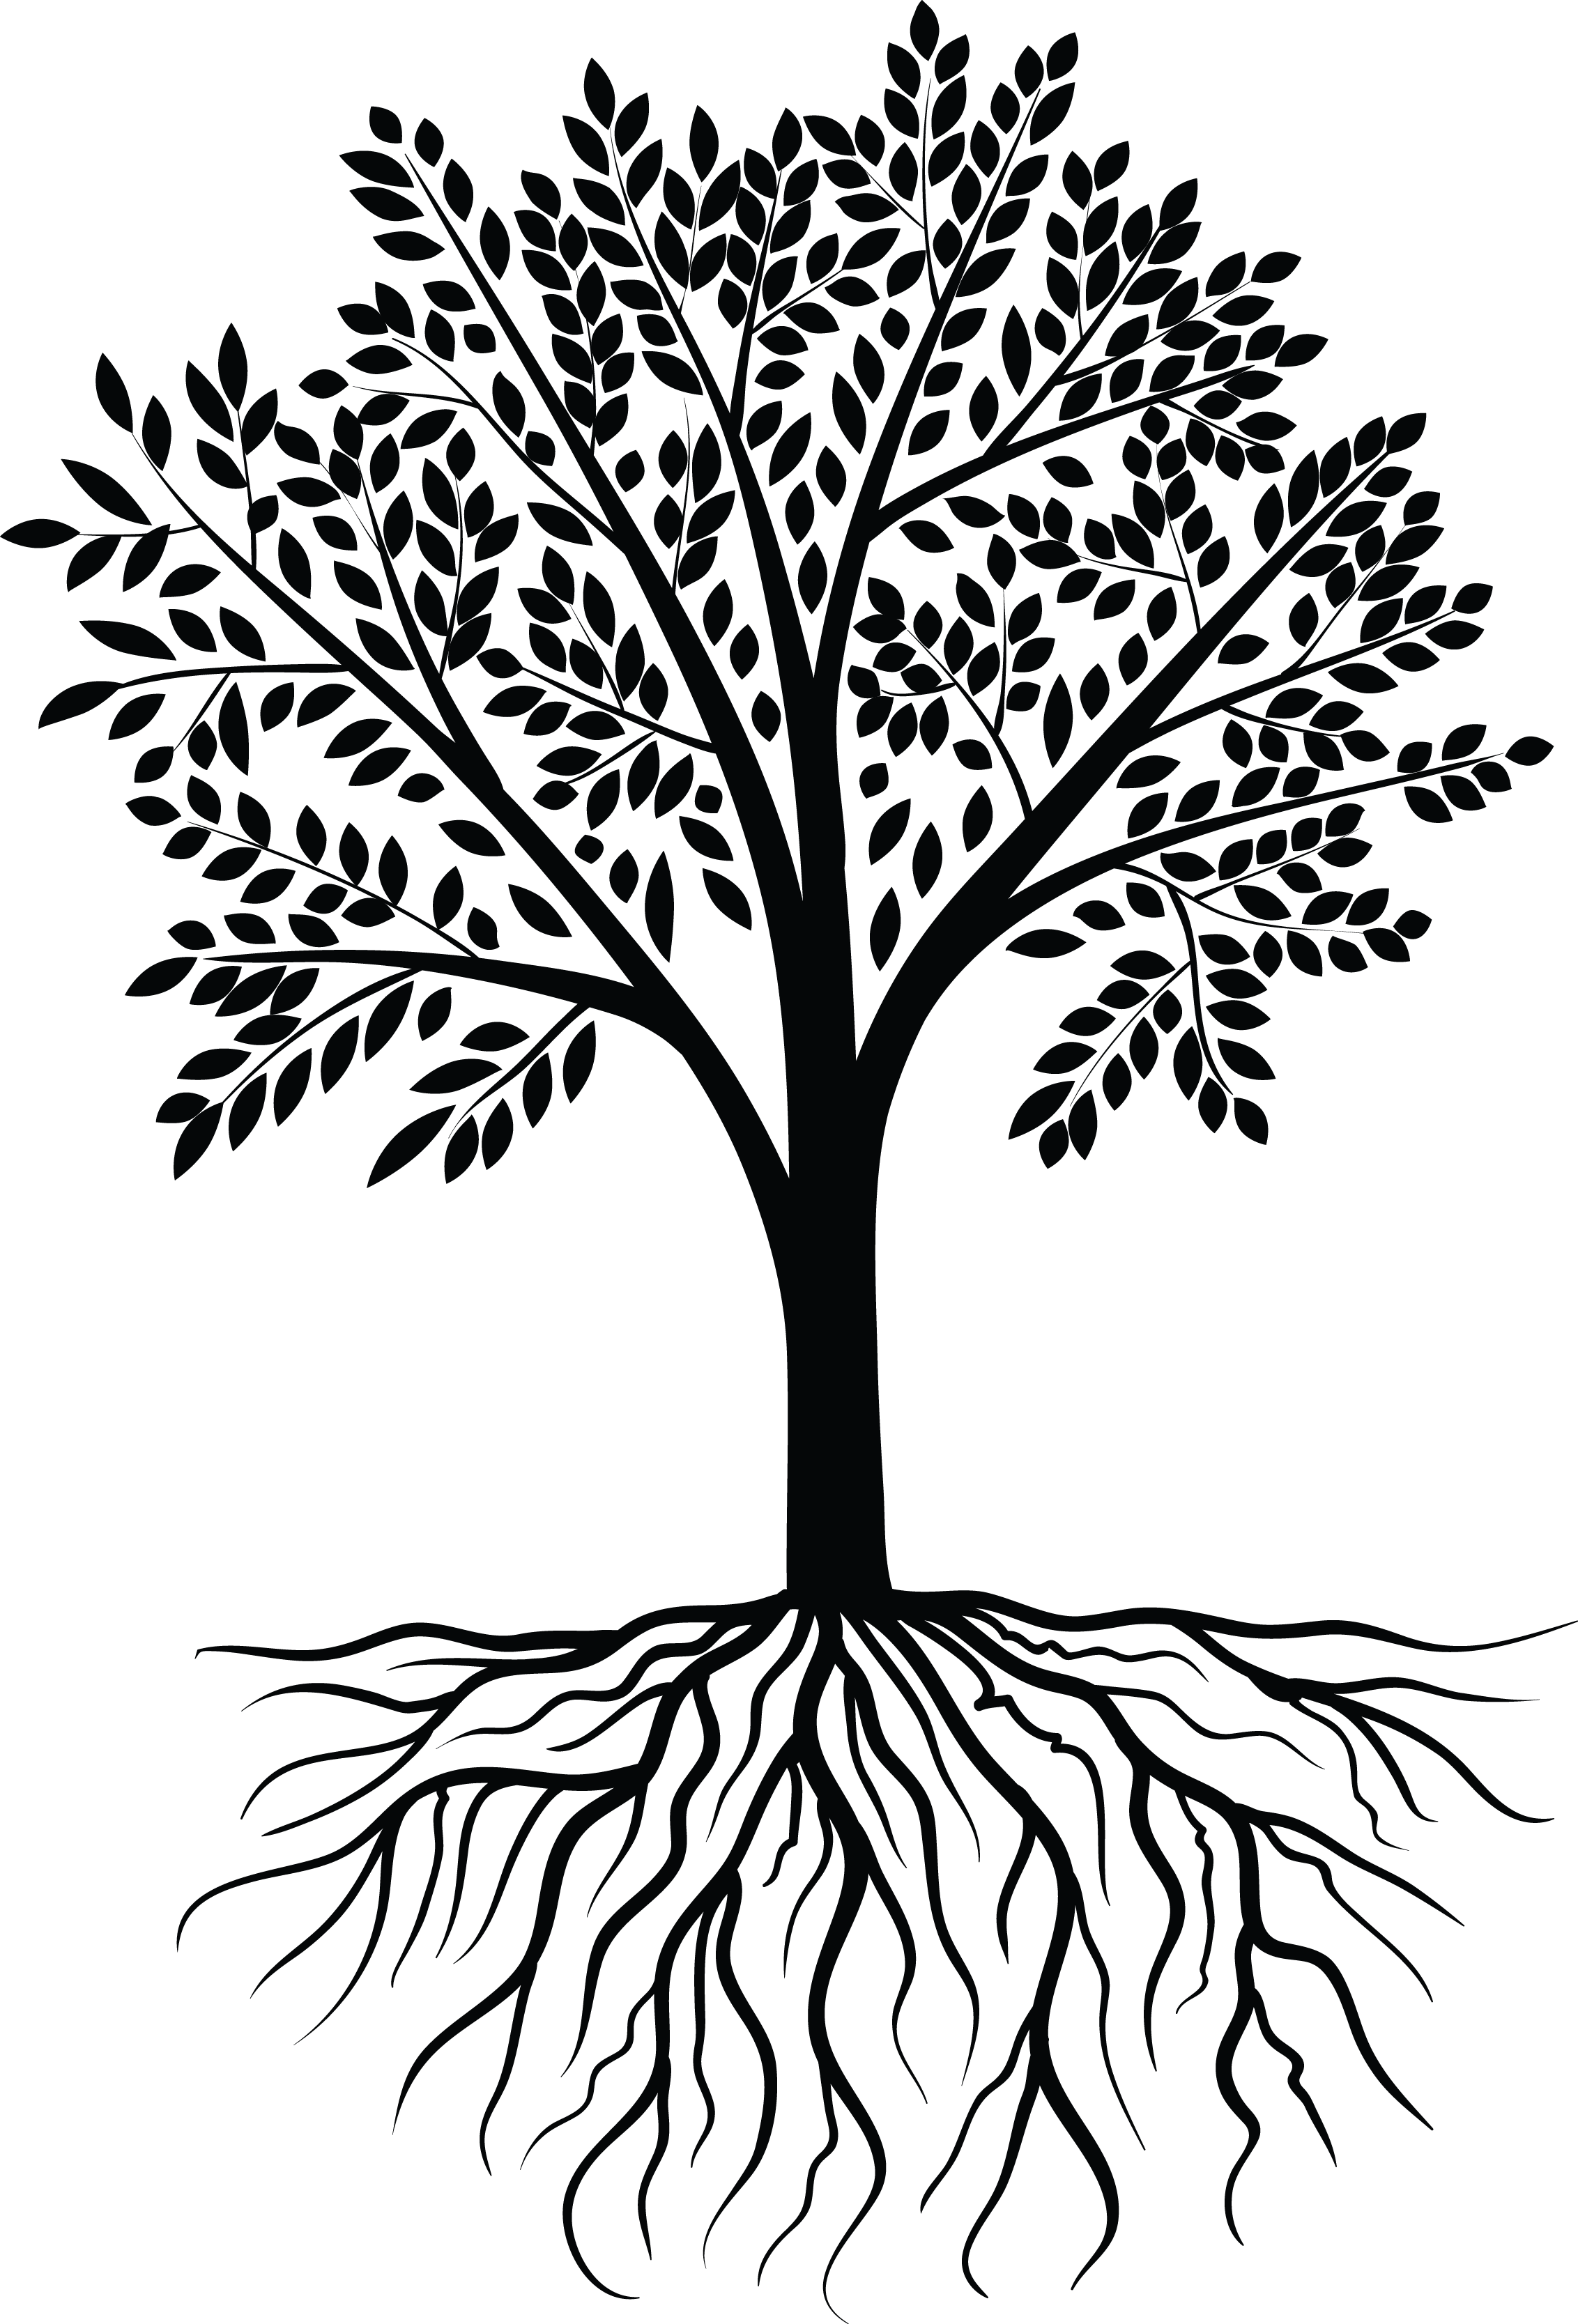 Black and white tree with roots clipart graphic Tree Vector Black White | design | Pinterest | Scrapbooking graphic